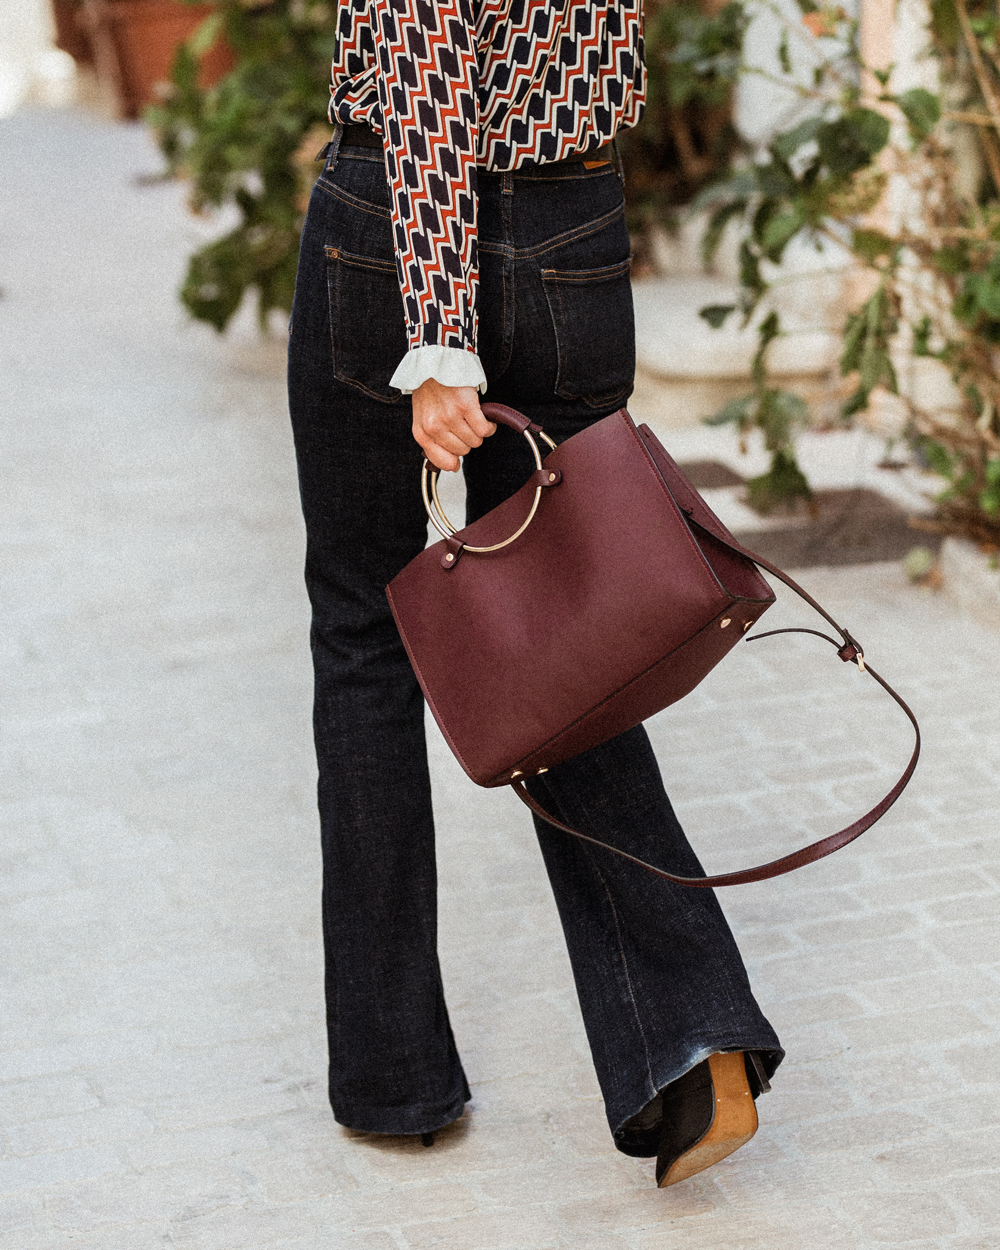 Foolproof classic outfit: Retro blouse and flare jeans